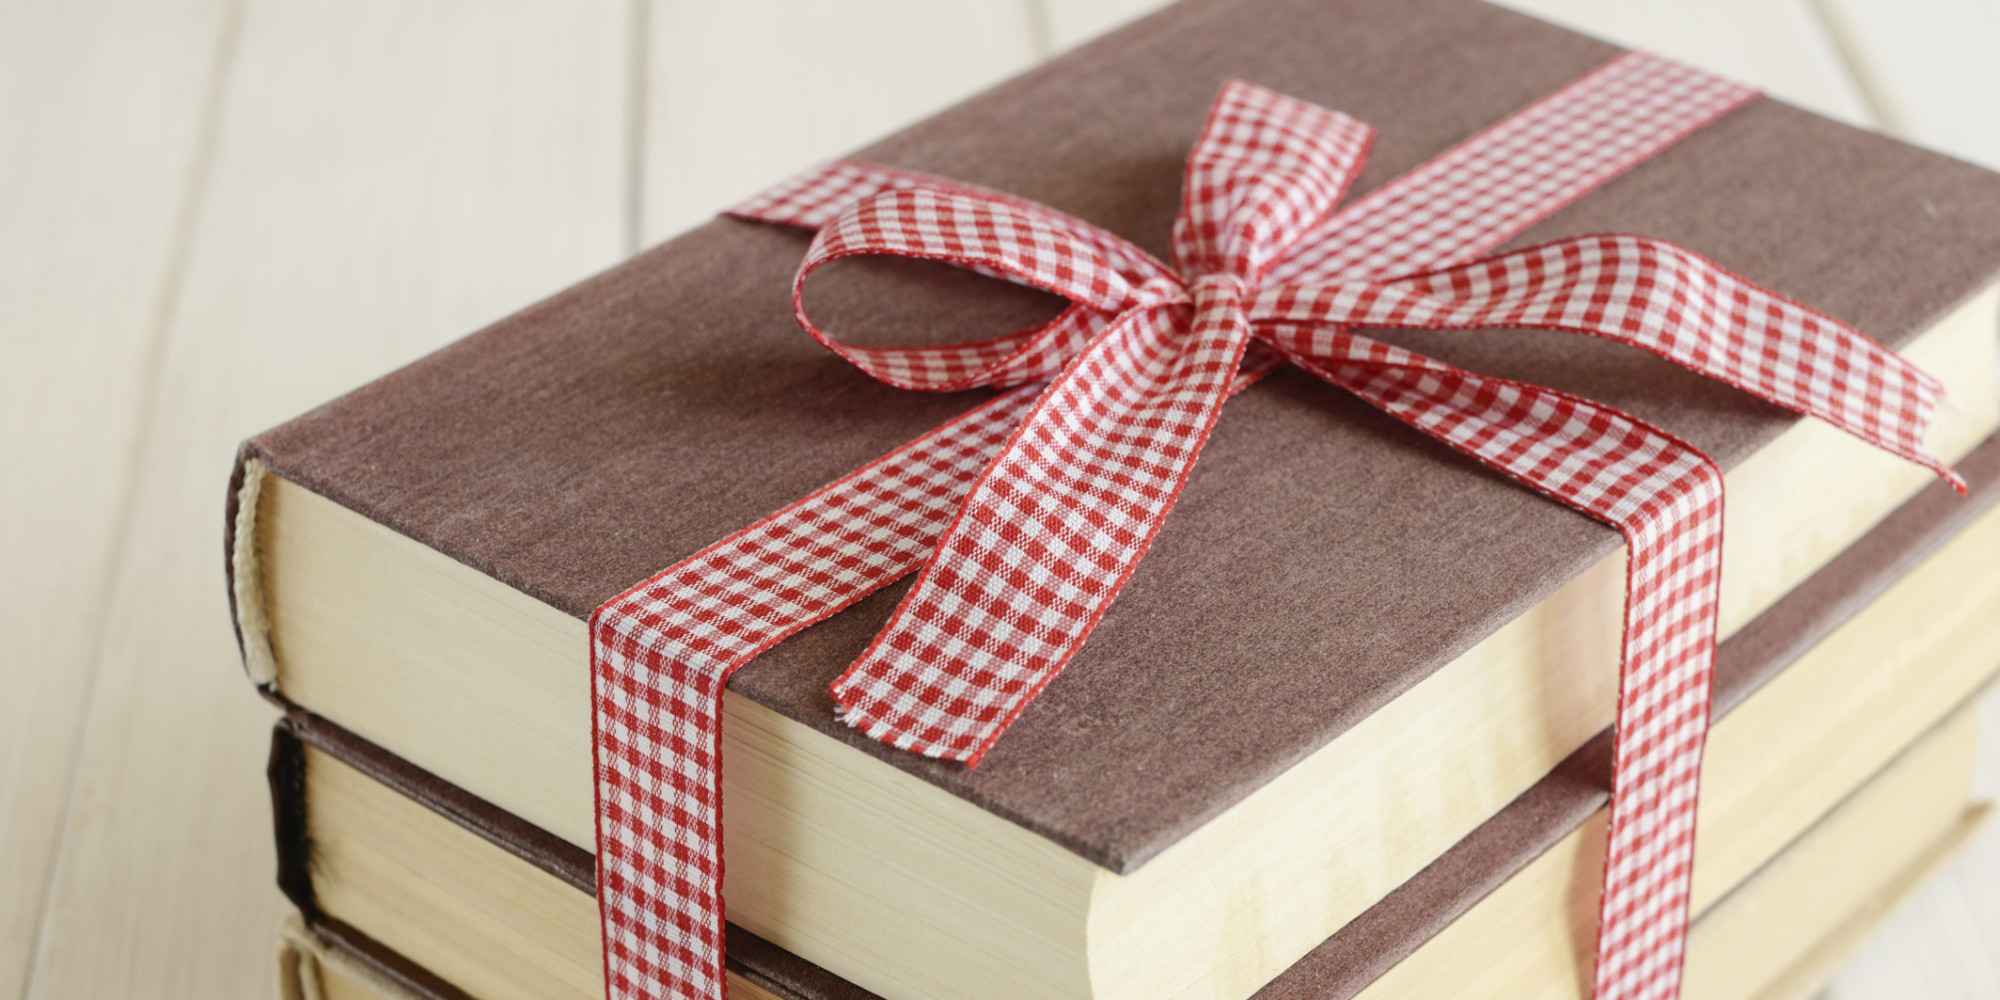 Decorative book bundle tied up with bow